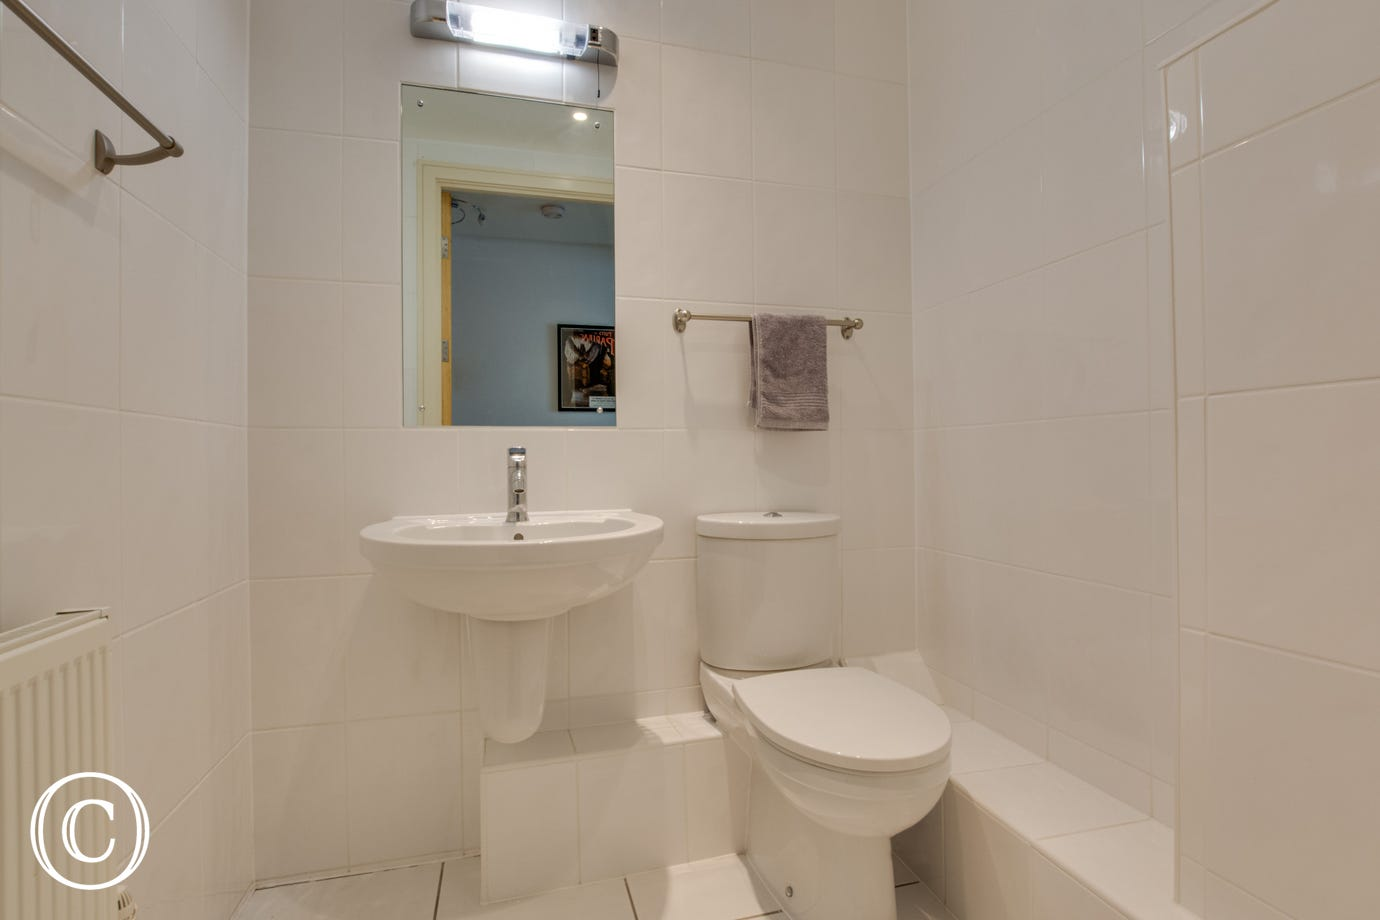 Separate toilet. Holiday accommodation in the village of Saundersfoot